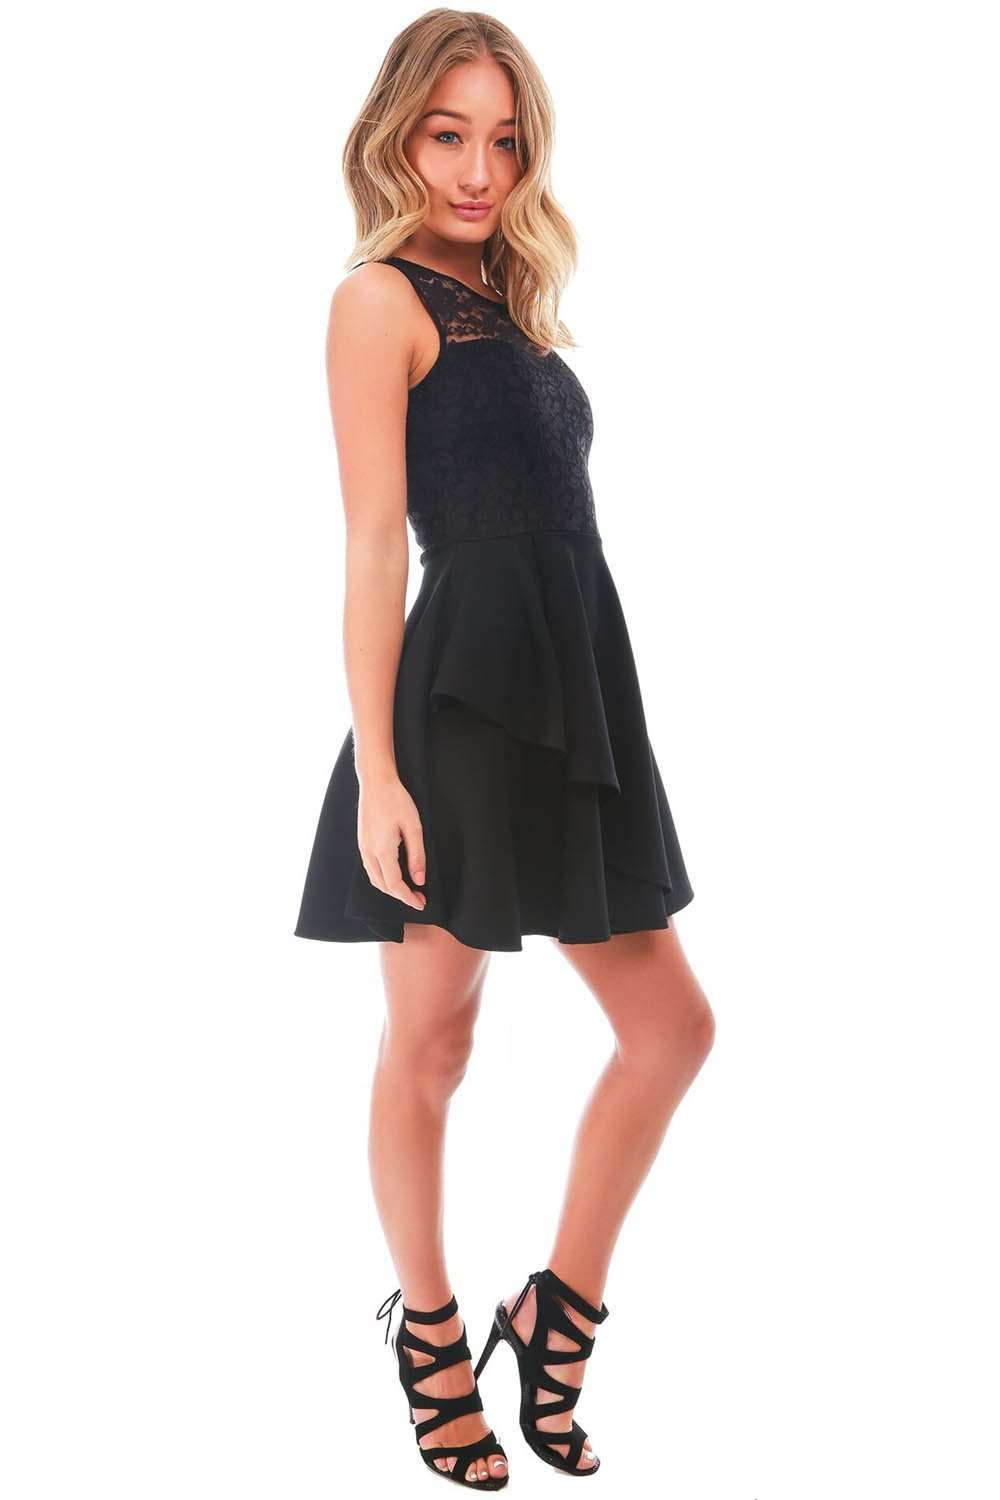 Lexie Tiered Frill Lace Mini Skater Dress - bejealous-com